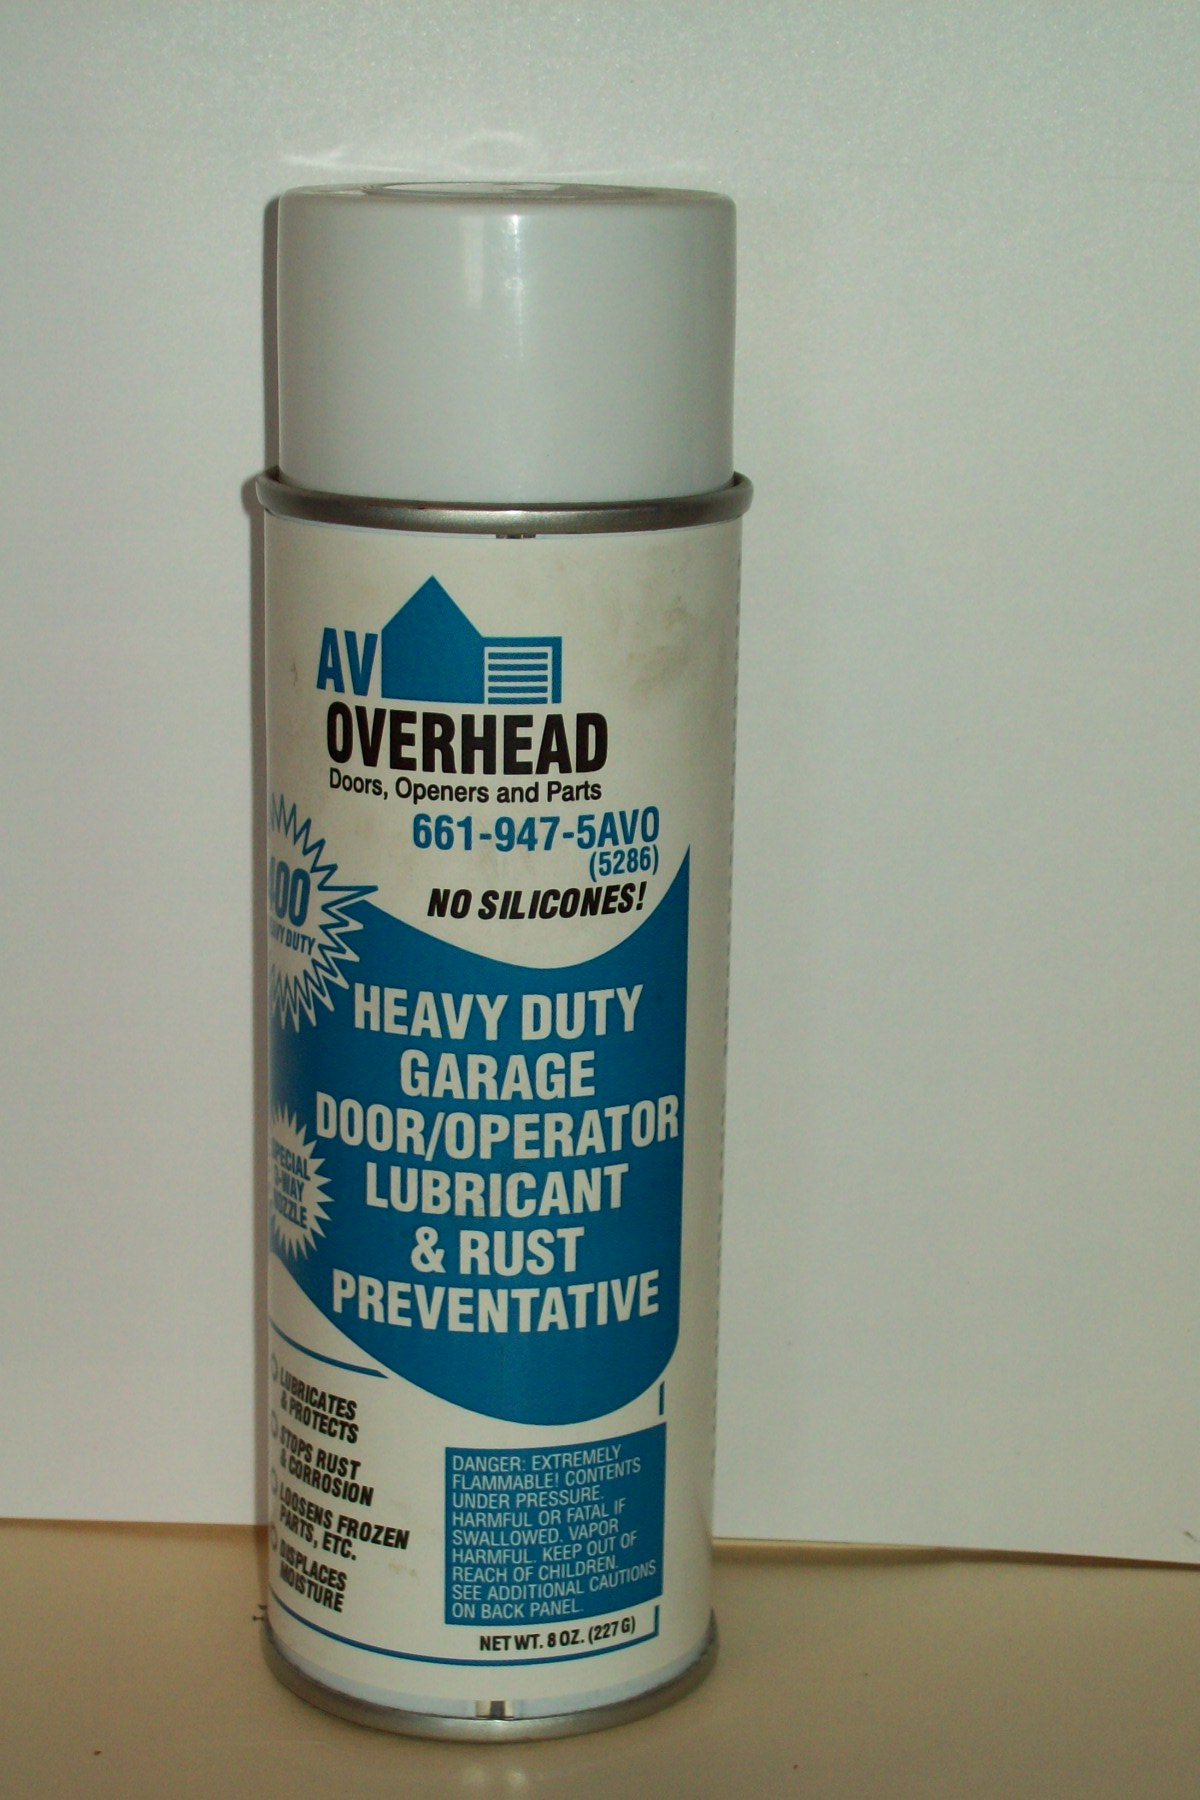 Low temperature lubriplate grease 10 oz 1199 av overhead av door lube 400 hd 8 oz aerosol rubansaba